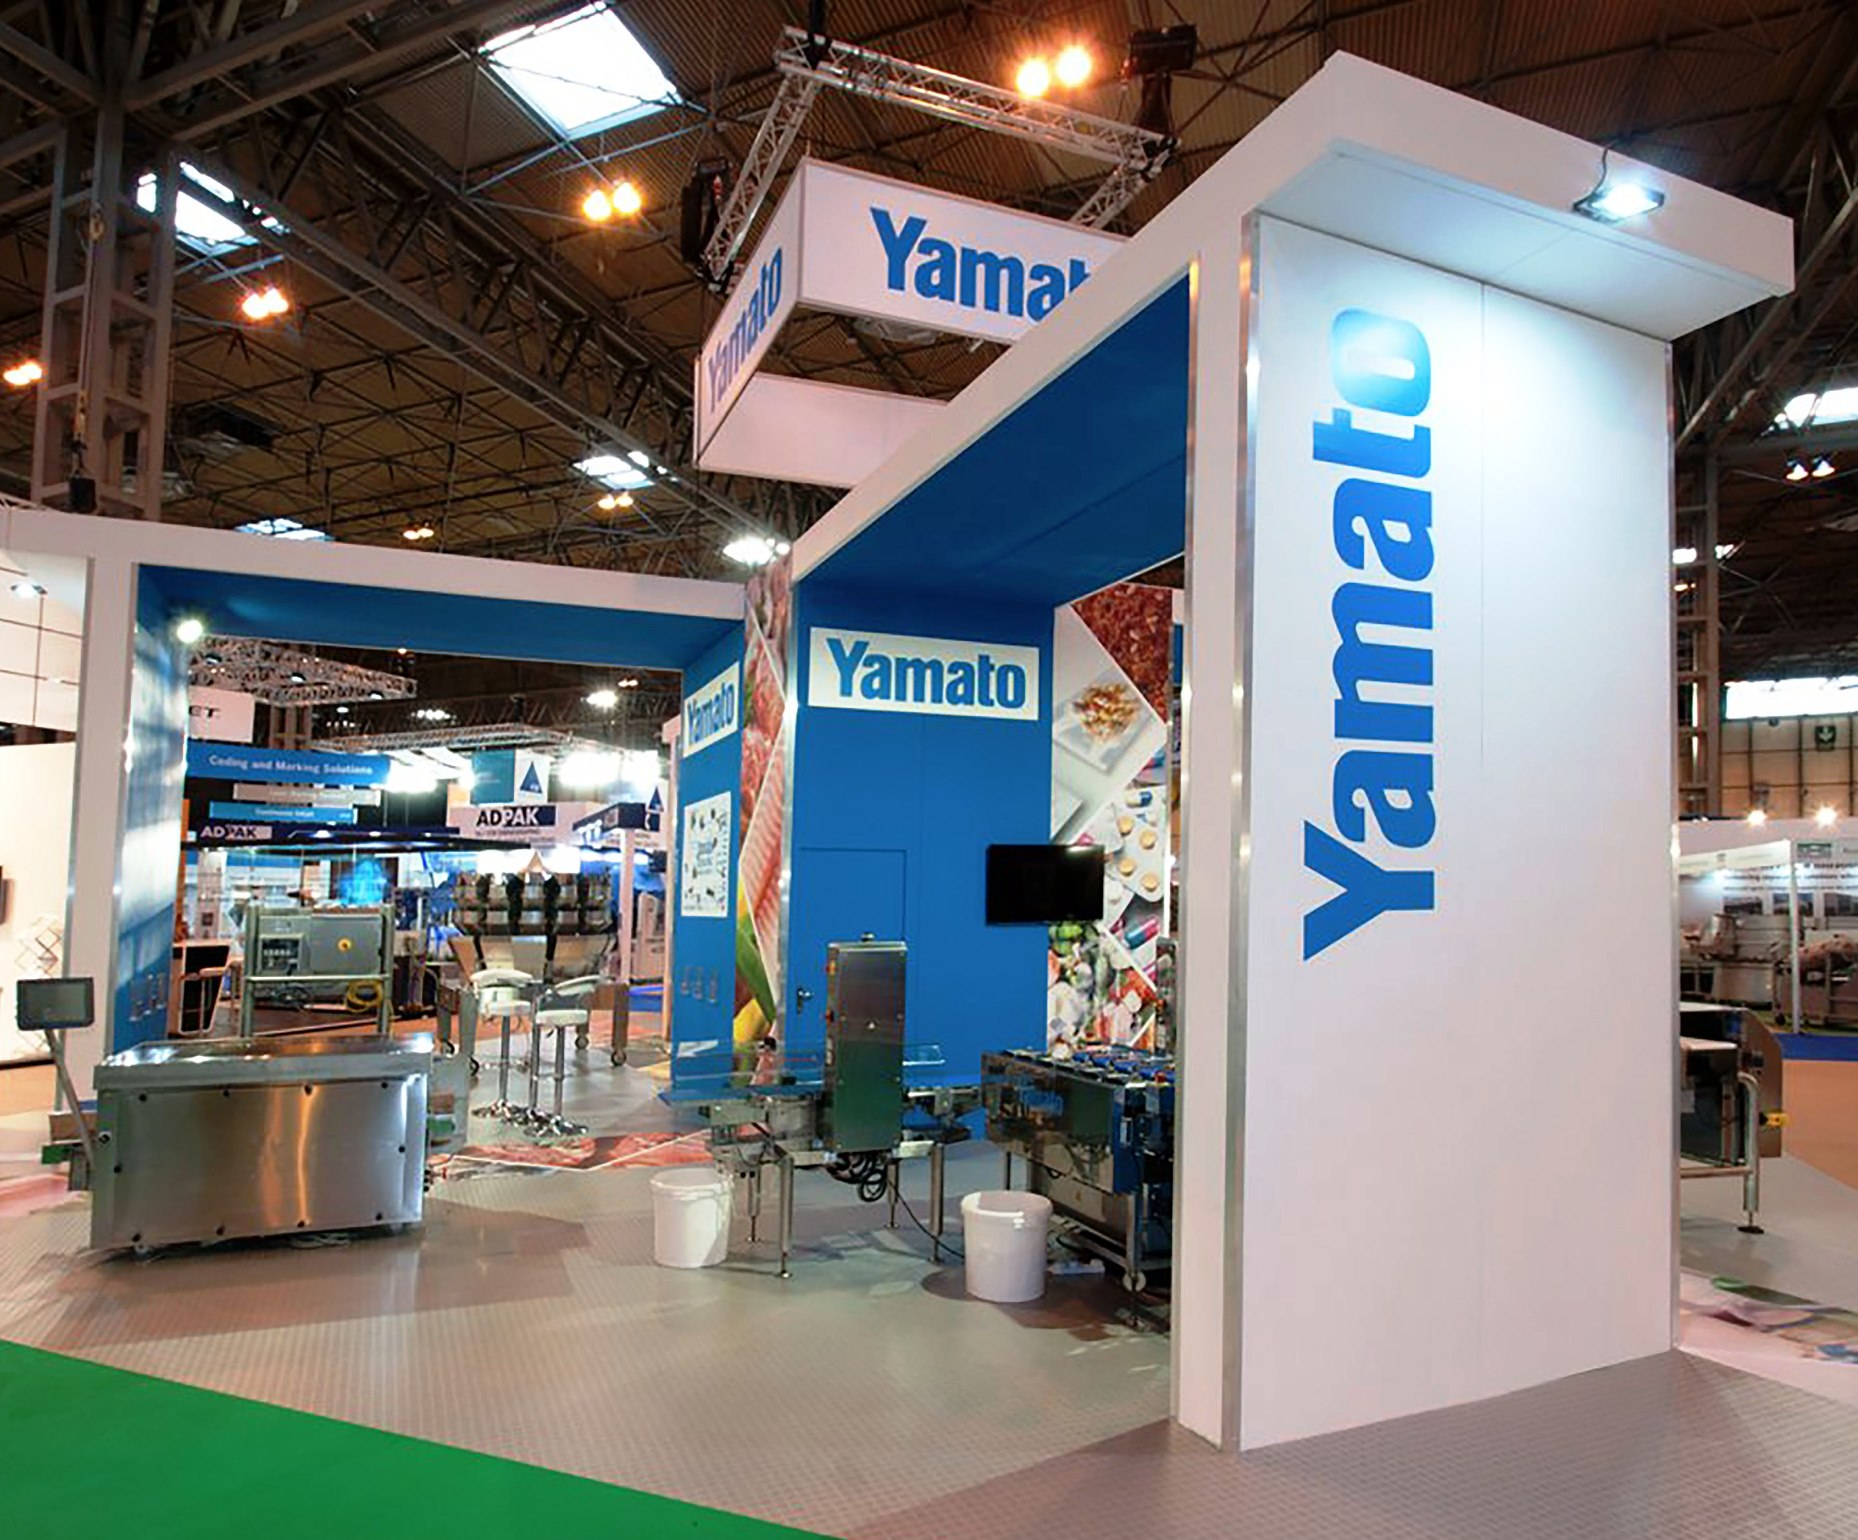 Yamato at Interplas at the NEC in Birmingham